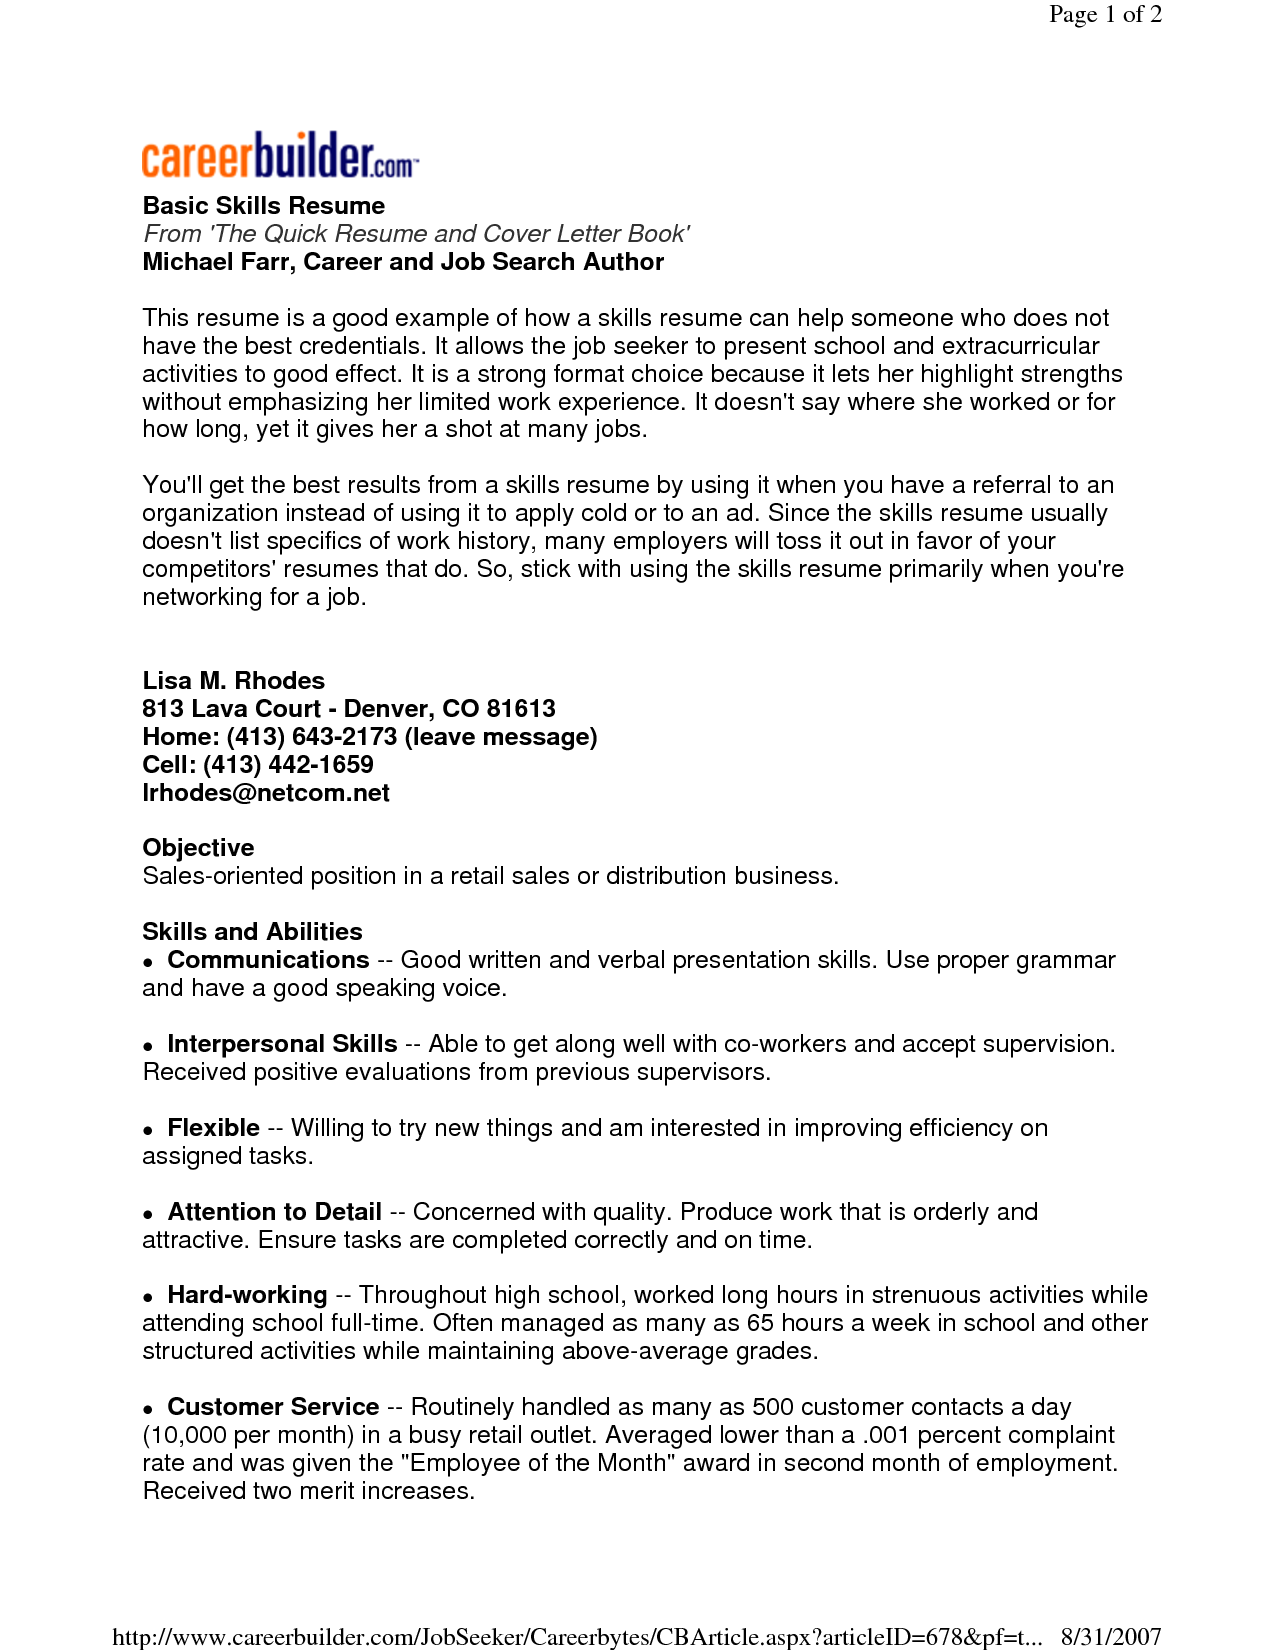 Resume Objective Sales Impressive Basic Resume Examples Skills  Httpwww.resumecareerbasic .